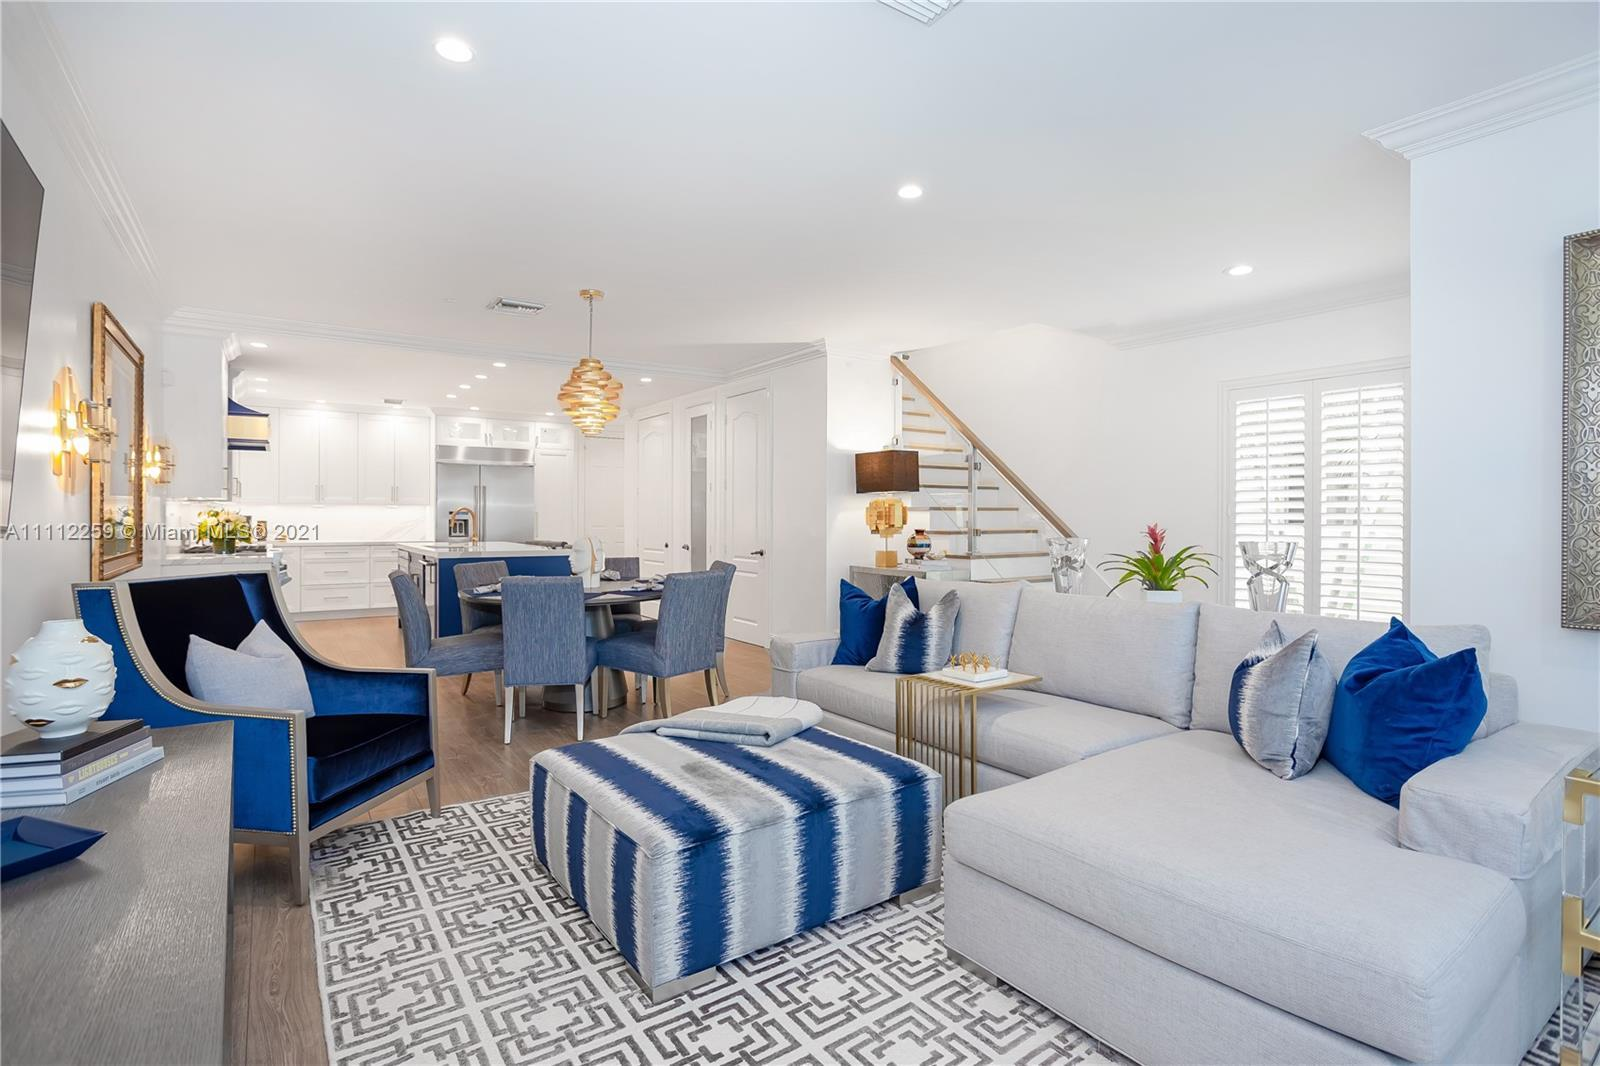 Stunning 4 bedroom 3.5 bath townhome with a 2 car garage in the heart of Victoria Park! Meticulously